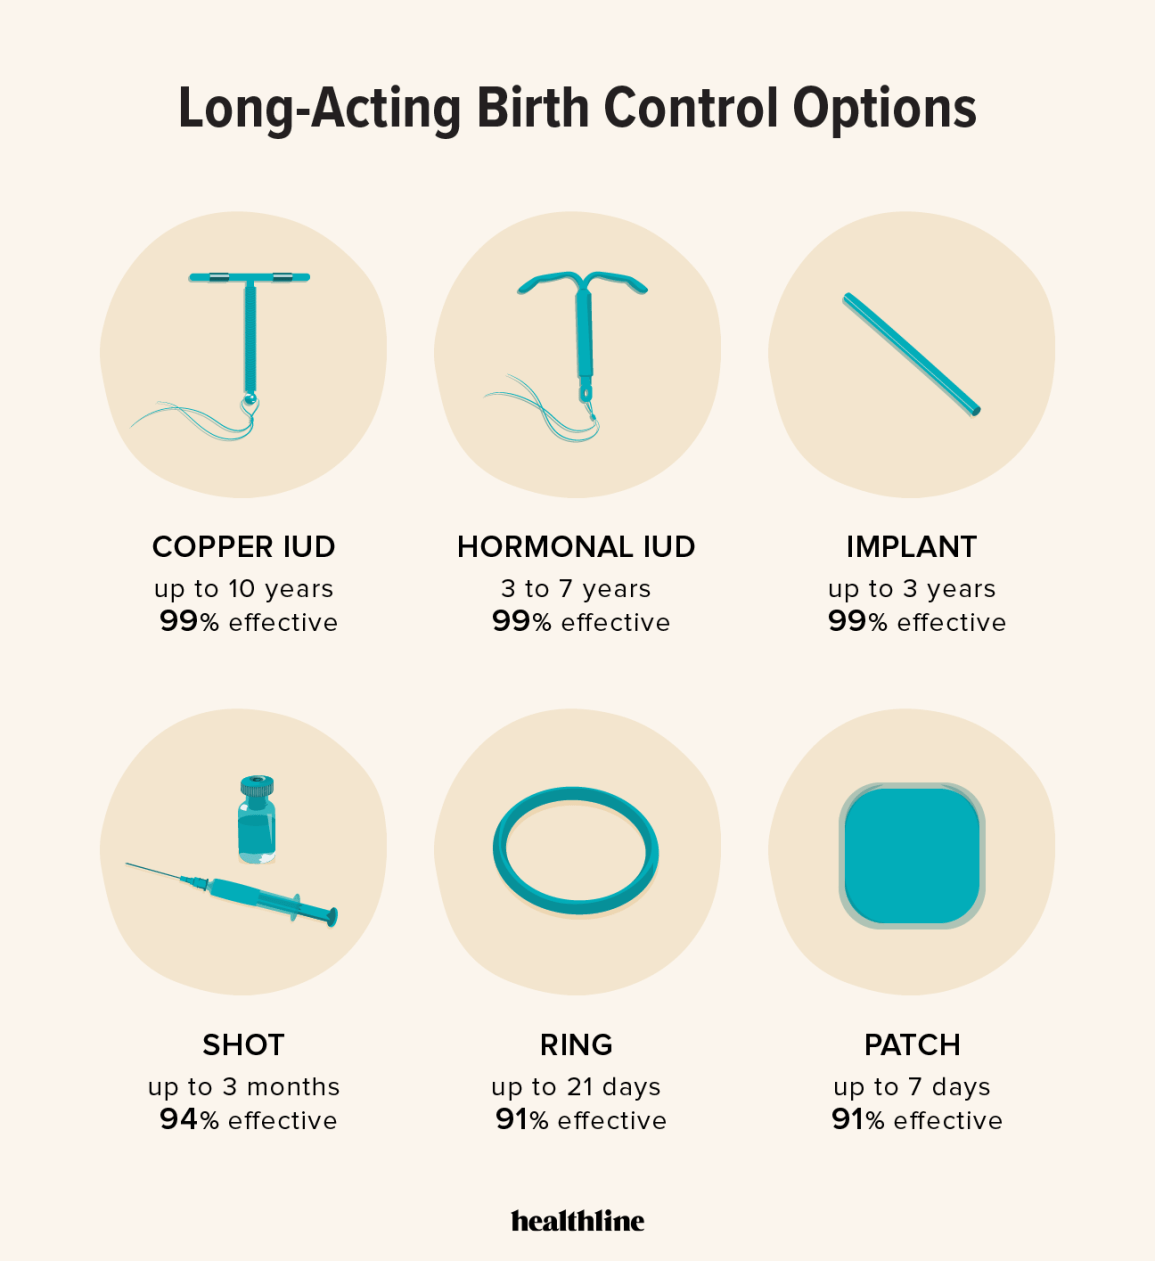 long-acting birth control options infographic